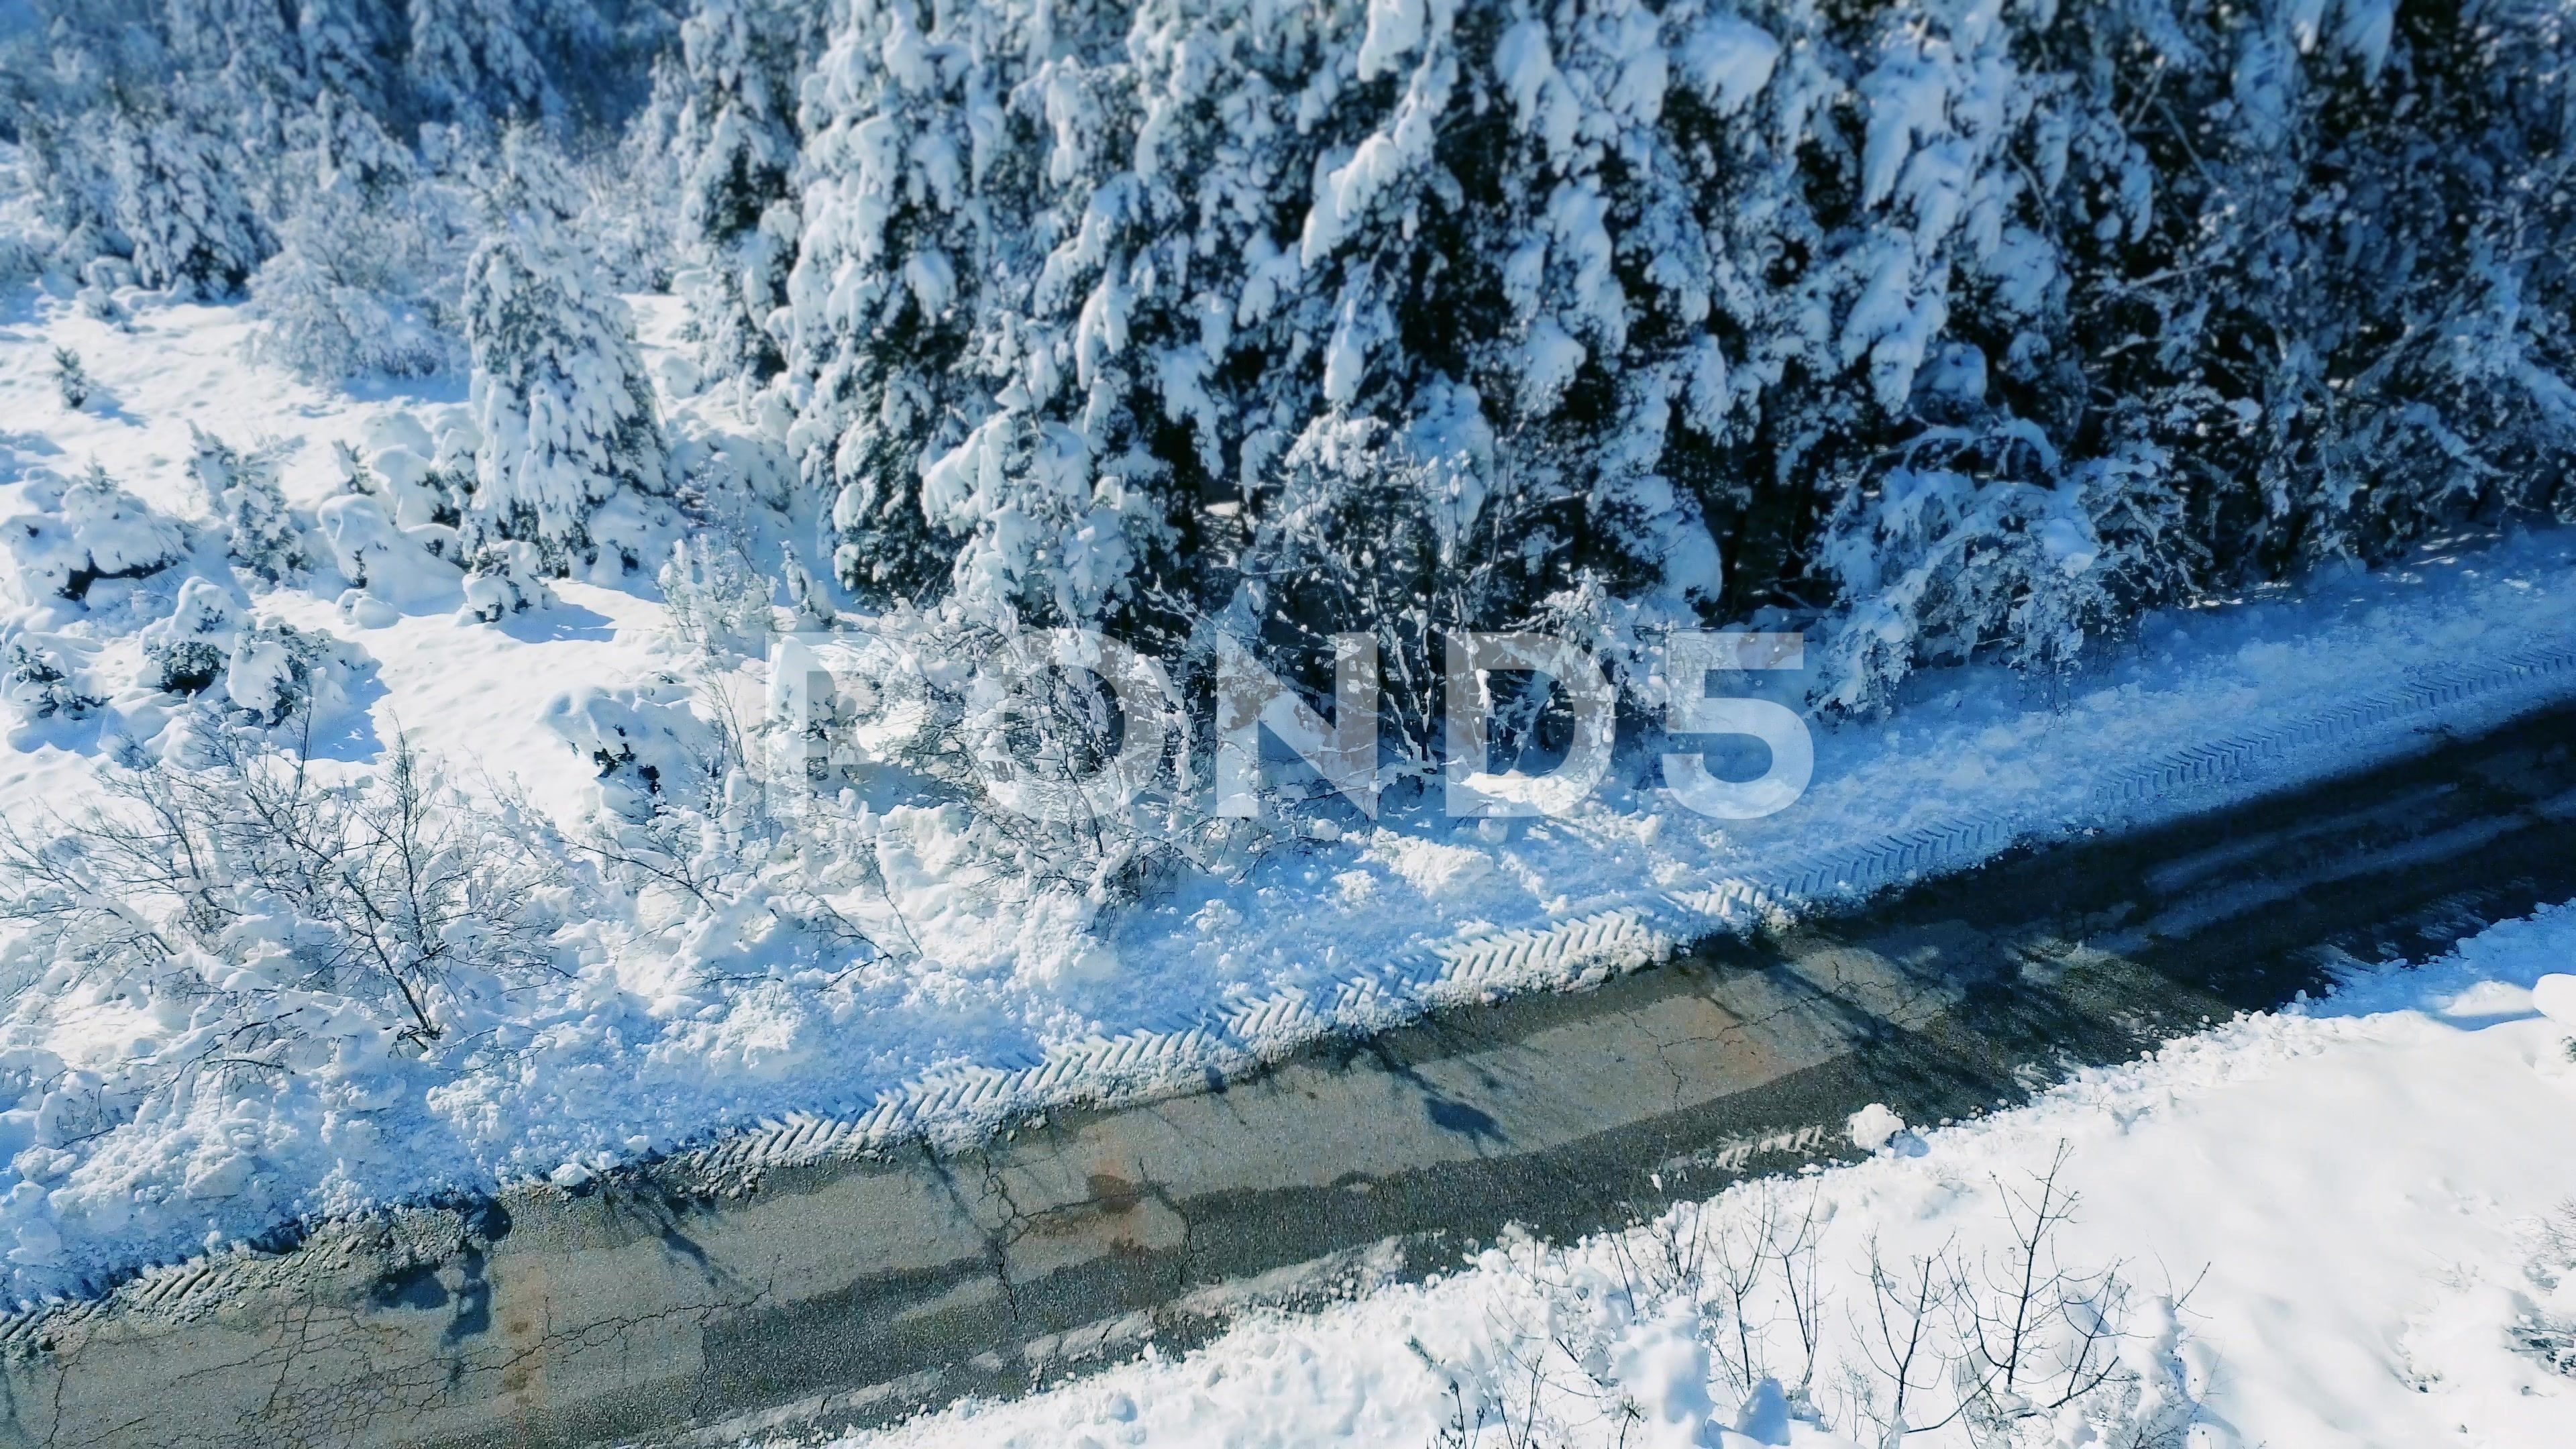 Aerial Snow Covered Trees Drone Footage Landscape Winter Nature Beautiful Europe Stock Footage Ad Trees Dr Winter Landscape Winter Nature Snow Covered Trees